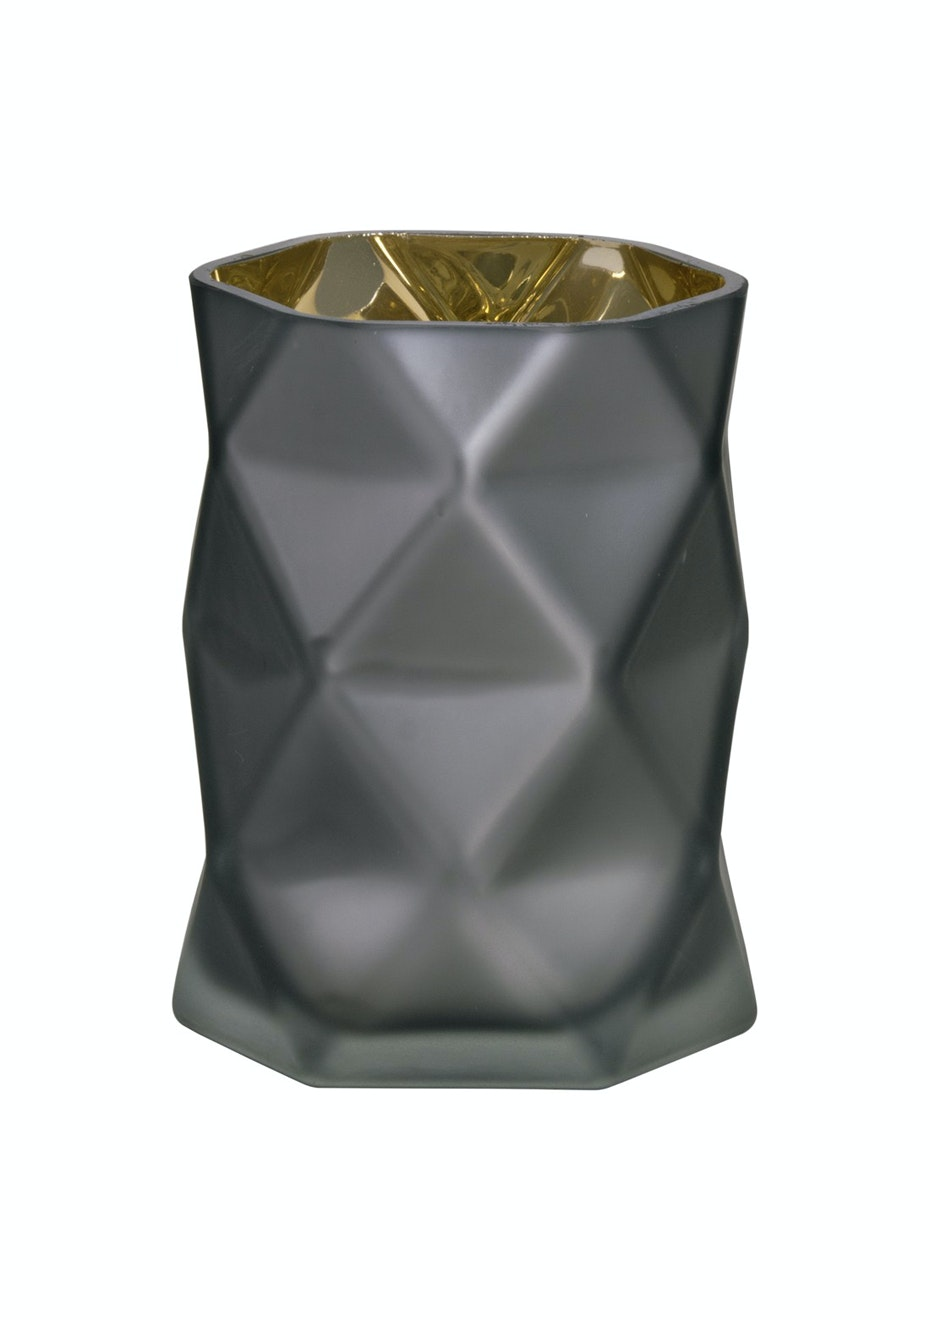 Jason - Geometric Candle Holder - Charcoal/Gold